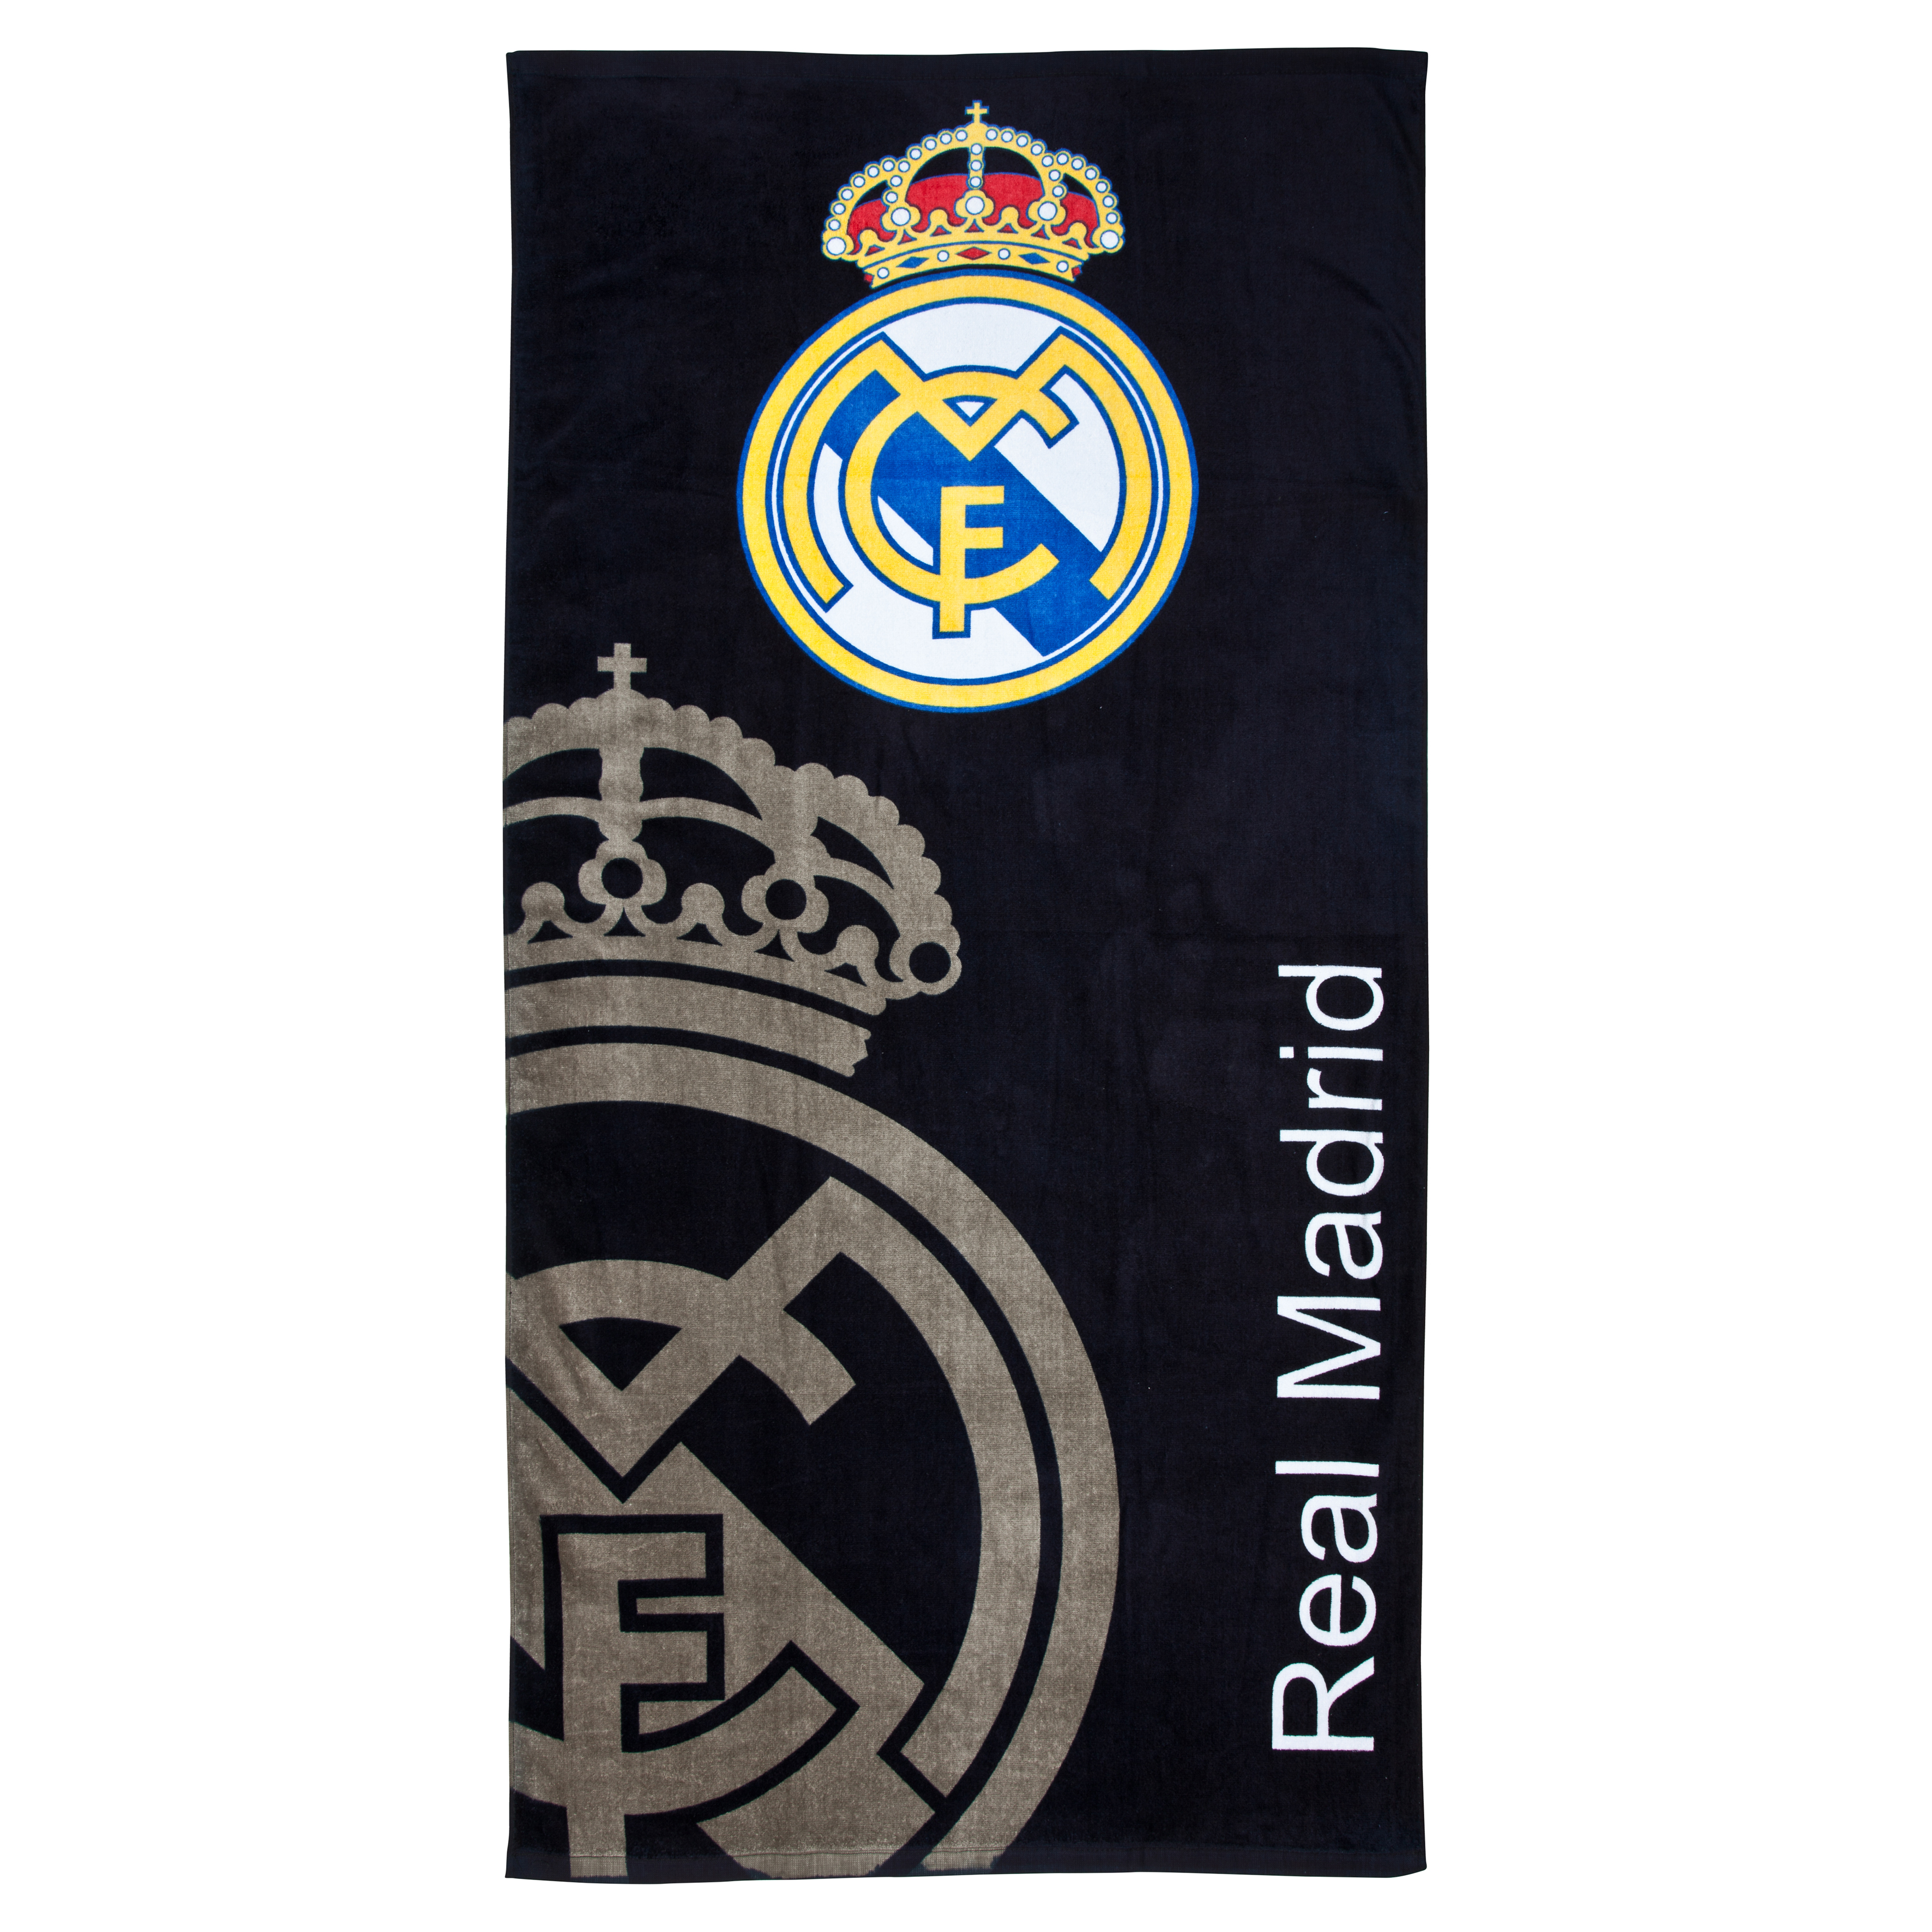 Toalla escudo Real Madrid - Negro - 75 cm x 150 cm